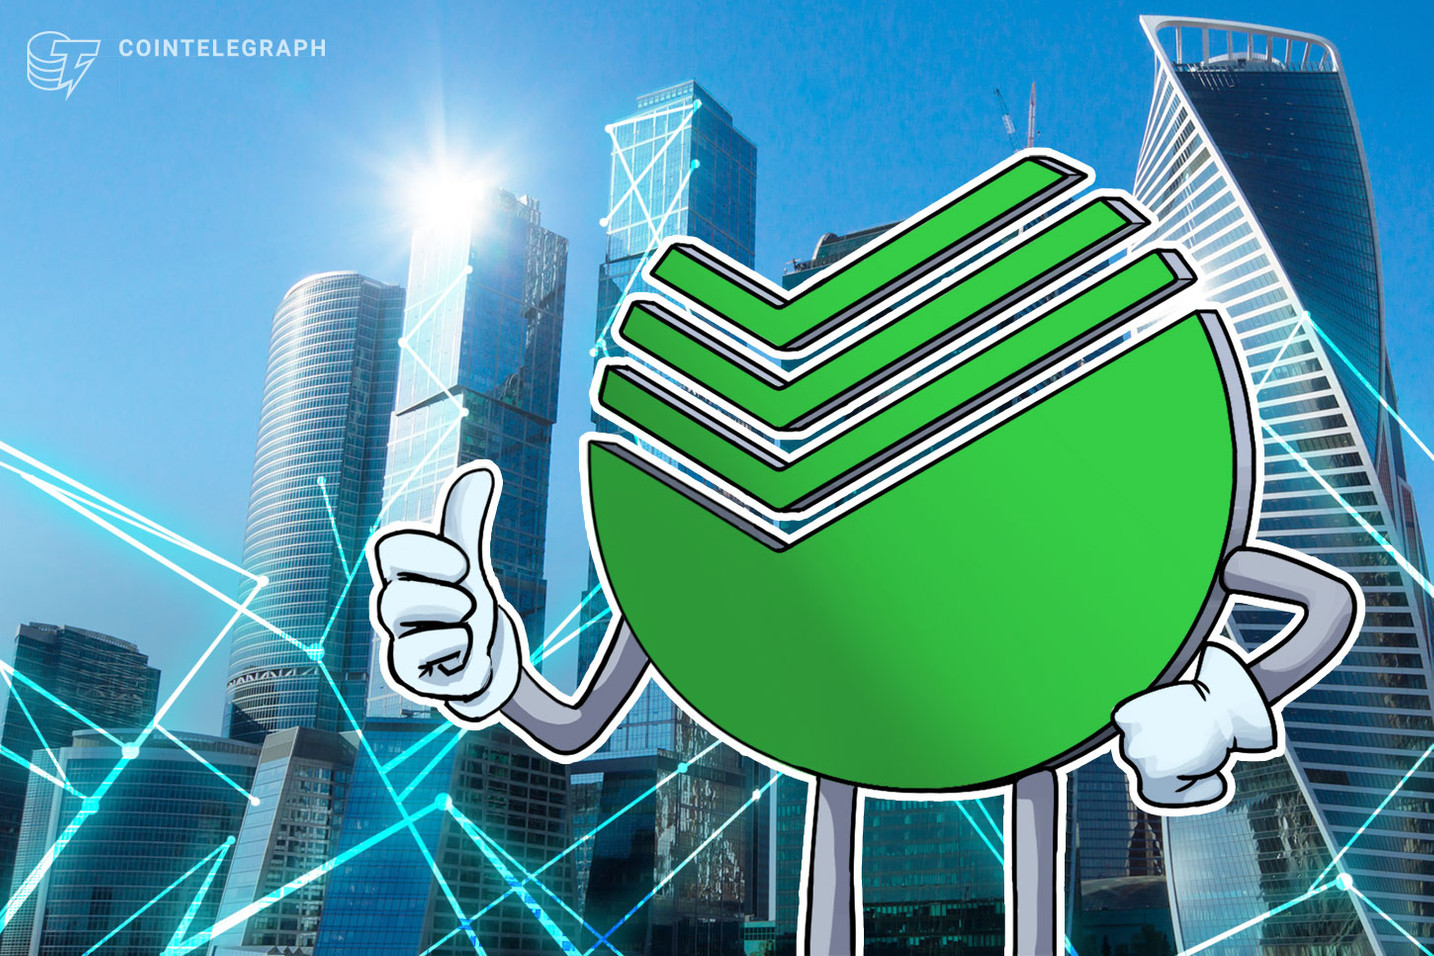 Russia's Sberbank and S7 Airlines to sell flight tickets for tokens